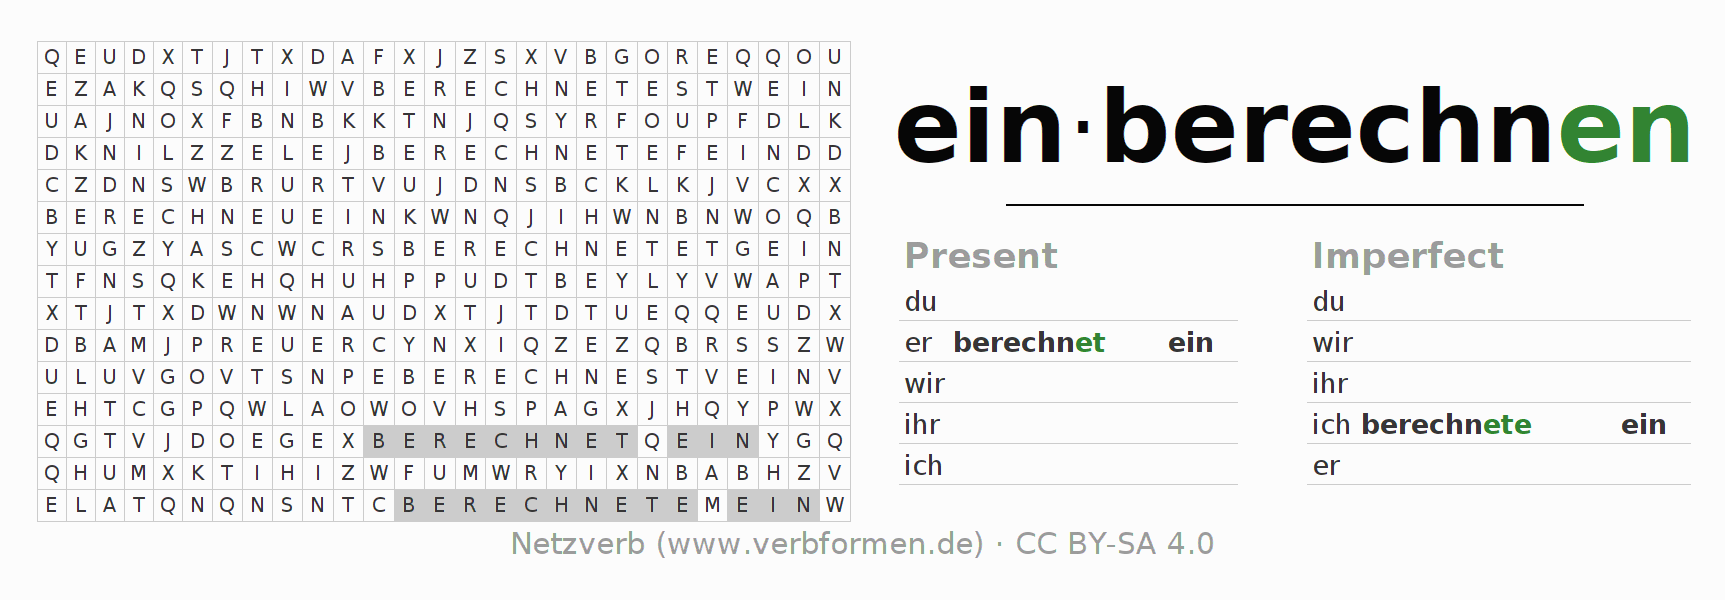 Word search puzzle for the conjugation of the verb einberechnen